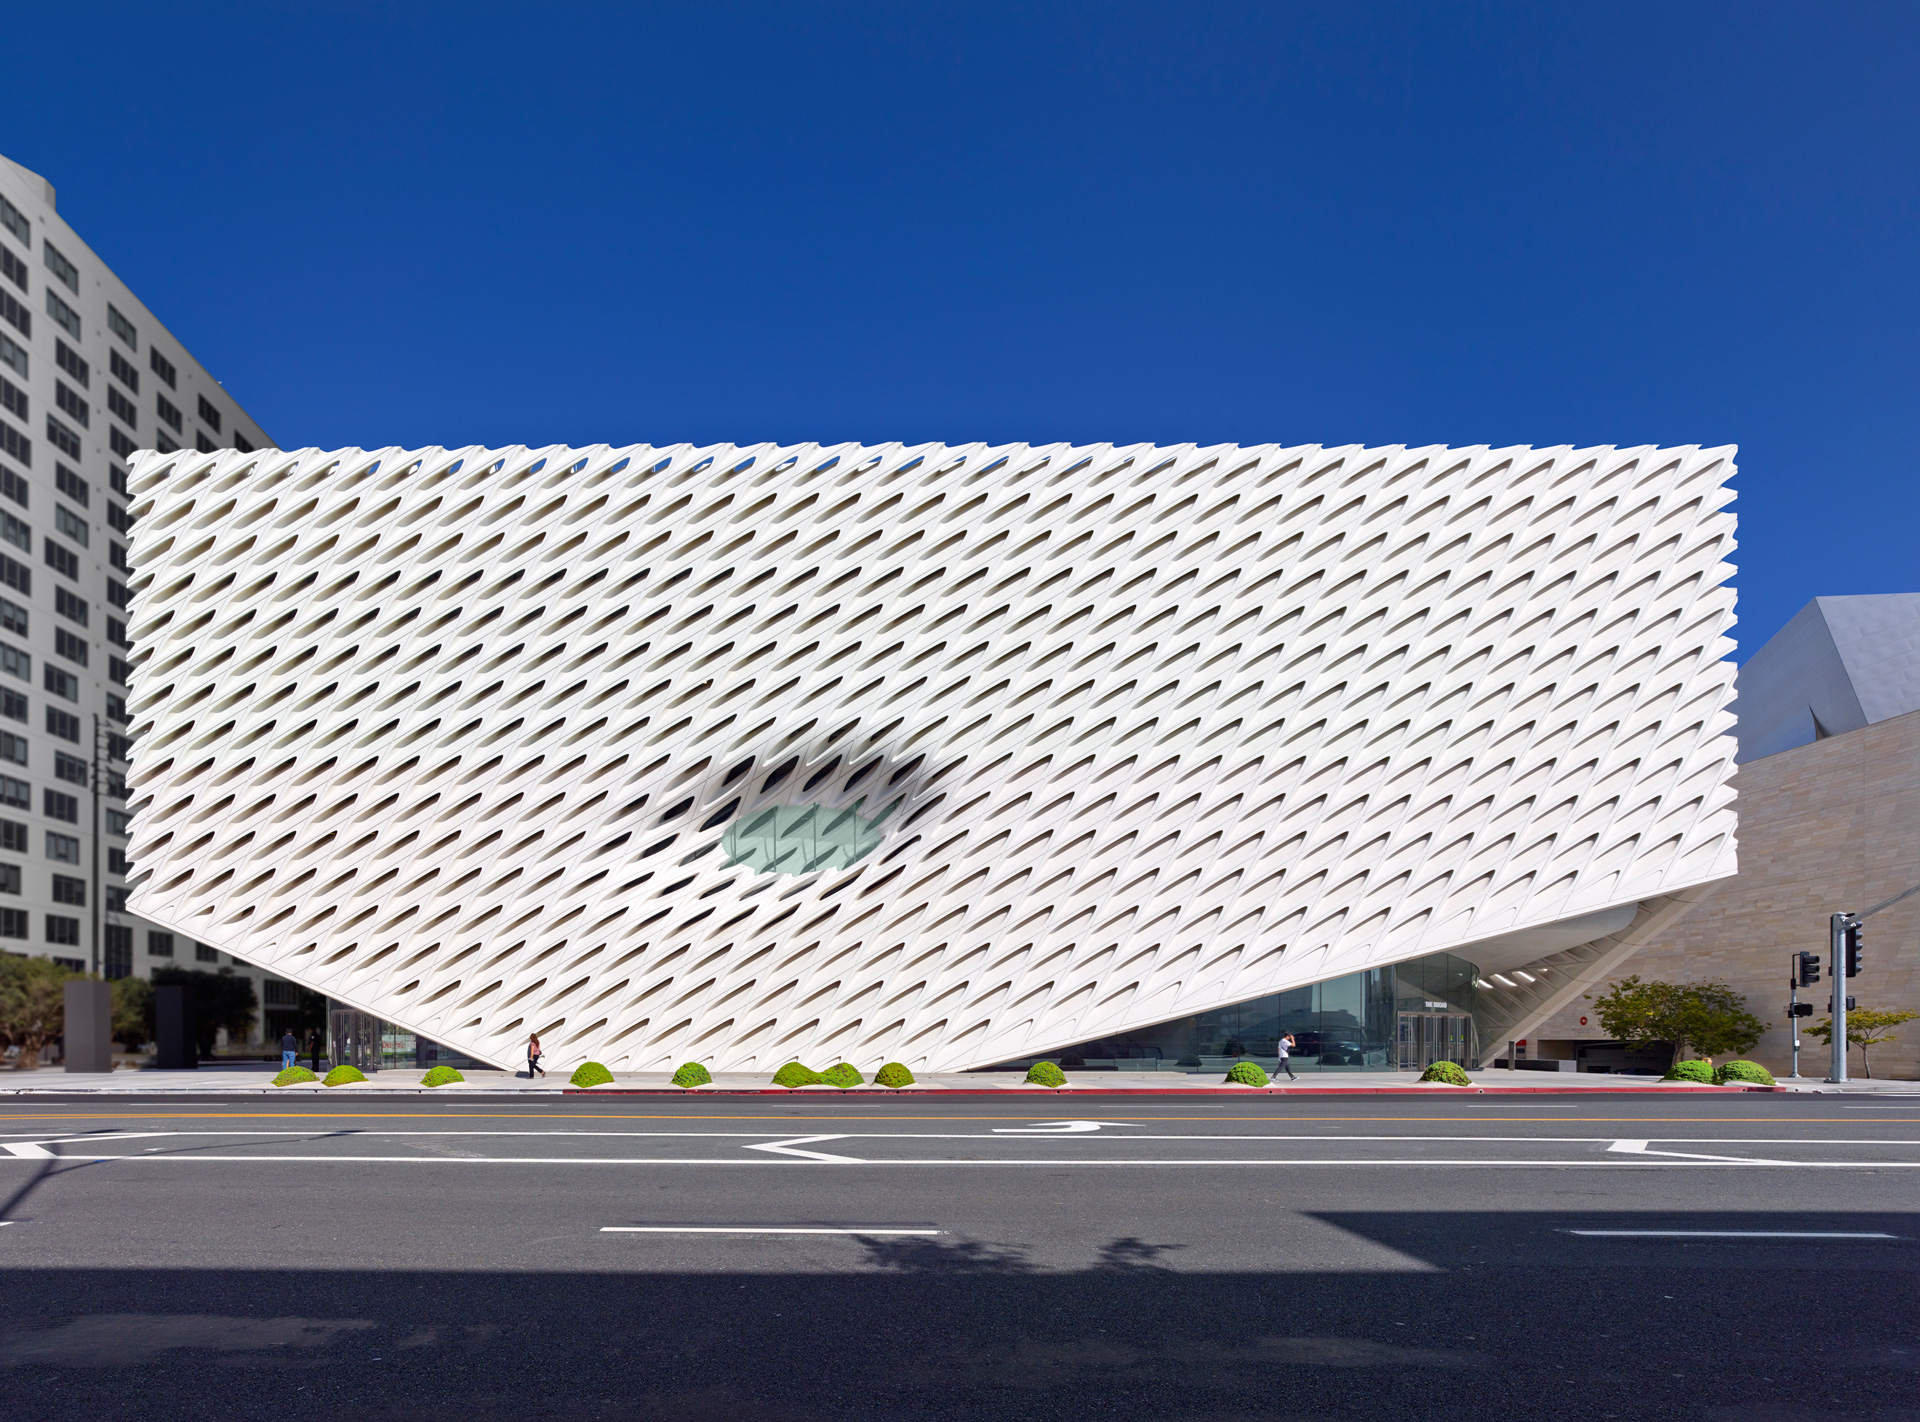 The Broad museum, on Grand Avenue in downtown Los Angeles; photo by Benny Chan, courtesy of The Broad and Diller Scofidio + Renfro